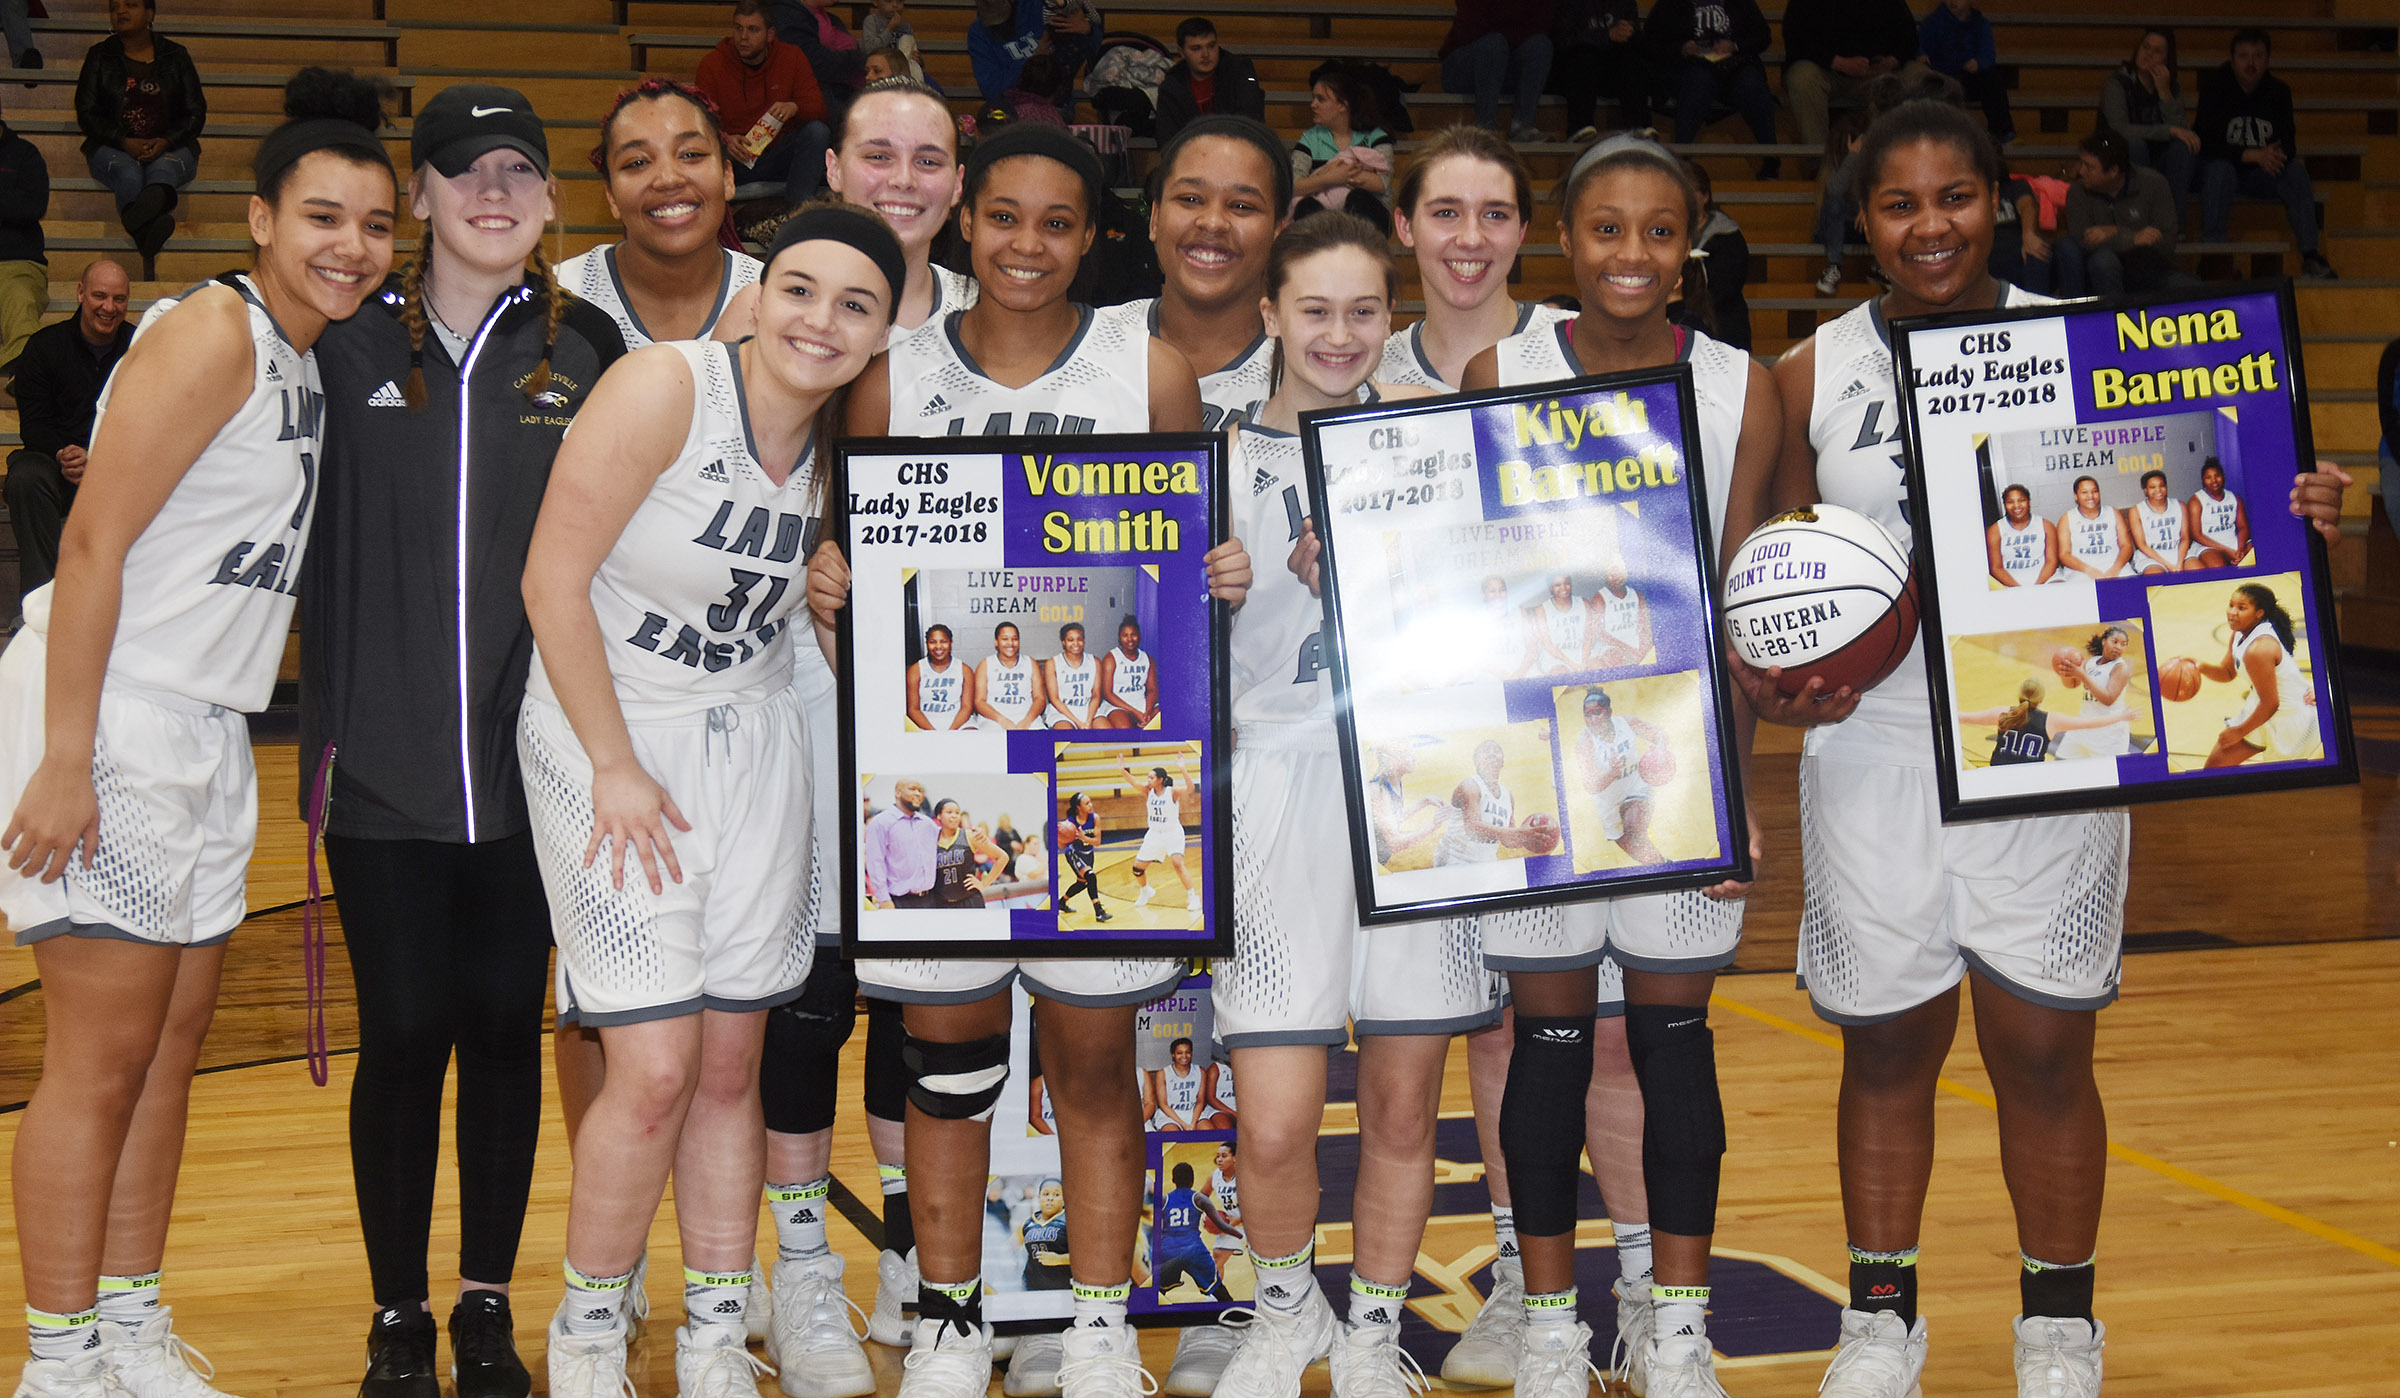 CHS girls' basketball players pose for a photo with senior players Vonnea Smith, Kayla Young and Nena Barnett.